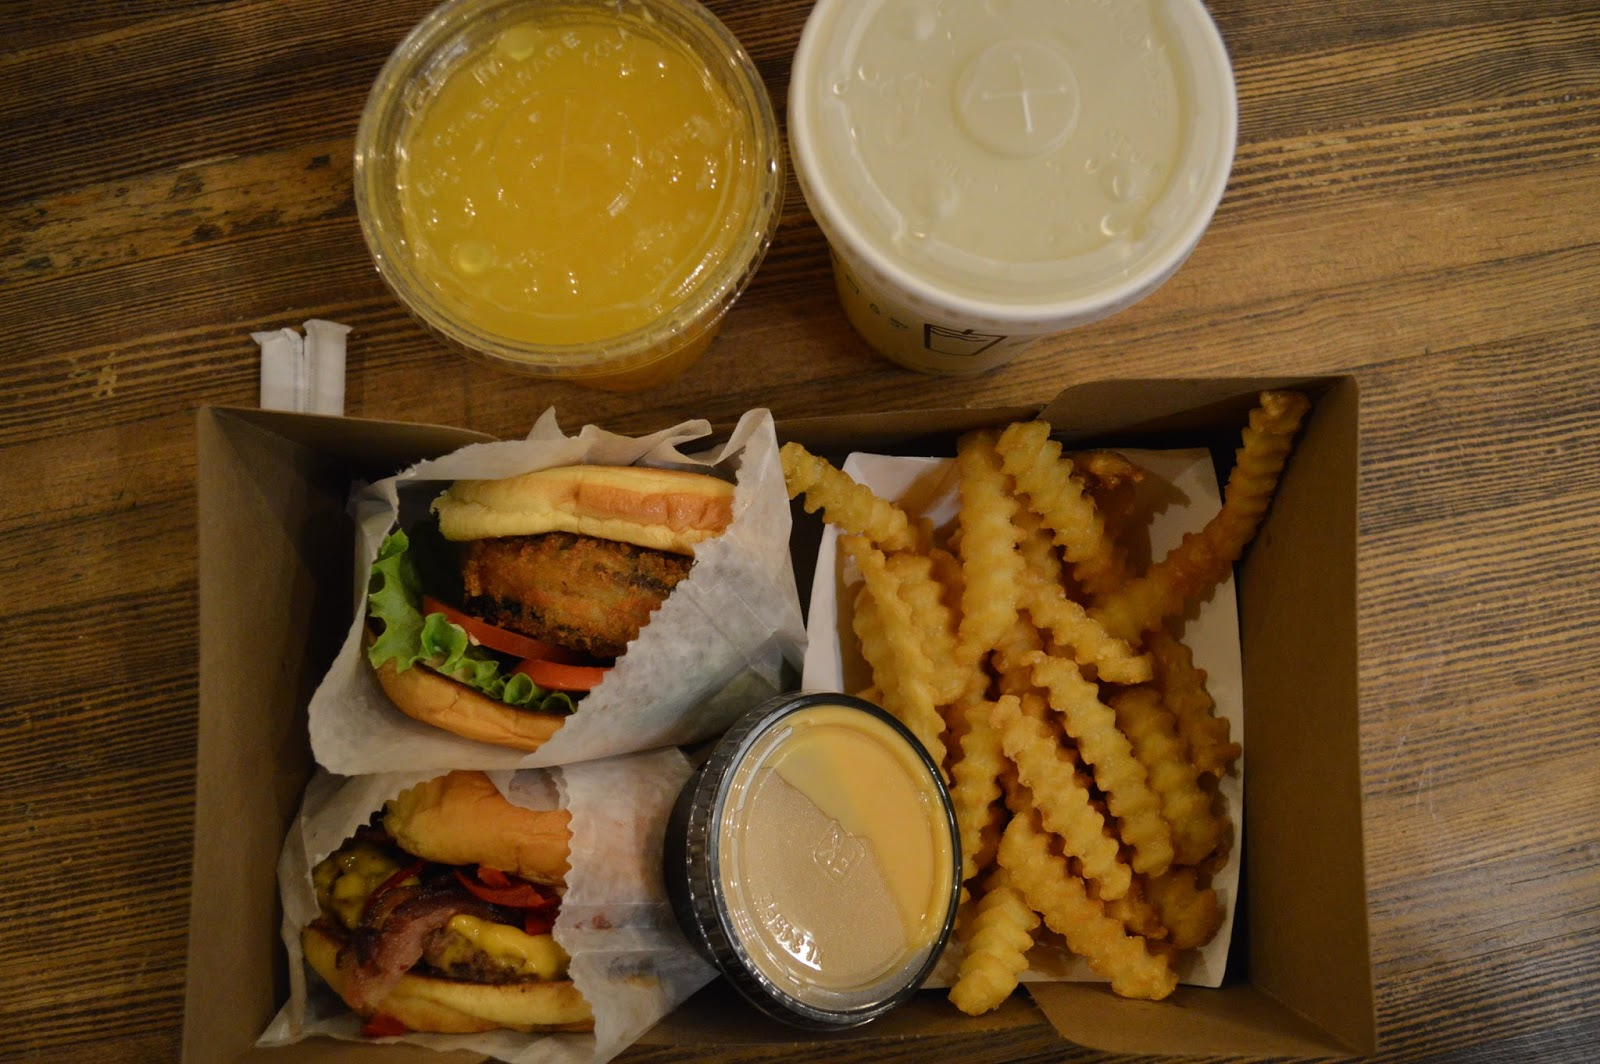 FREE SHAKE SHACK TO FIRST 100 CUSTOMERS ON TUESDAY, AUGUST 16!